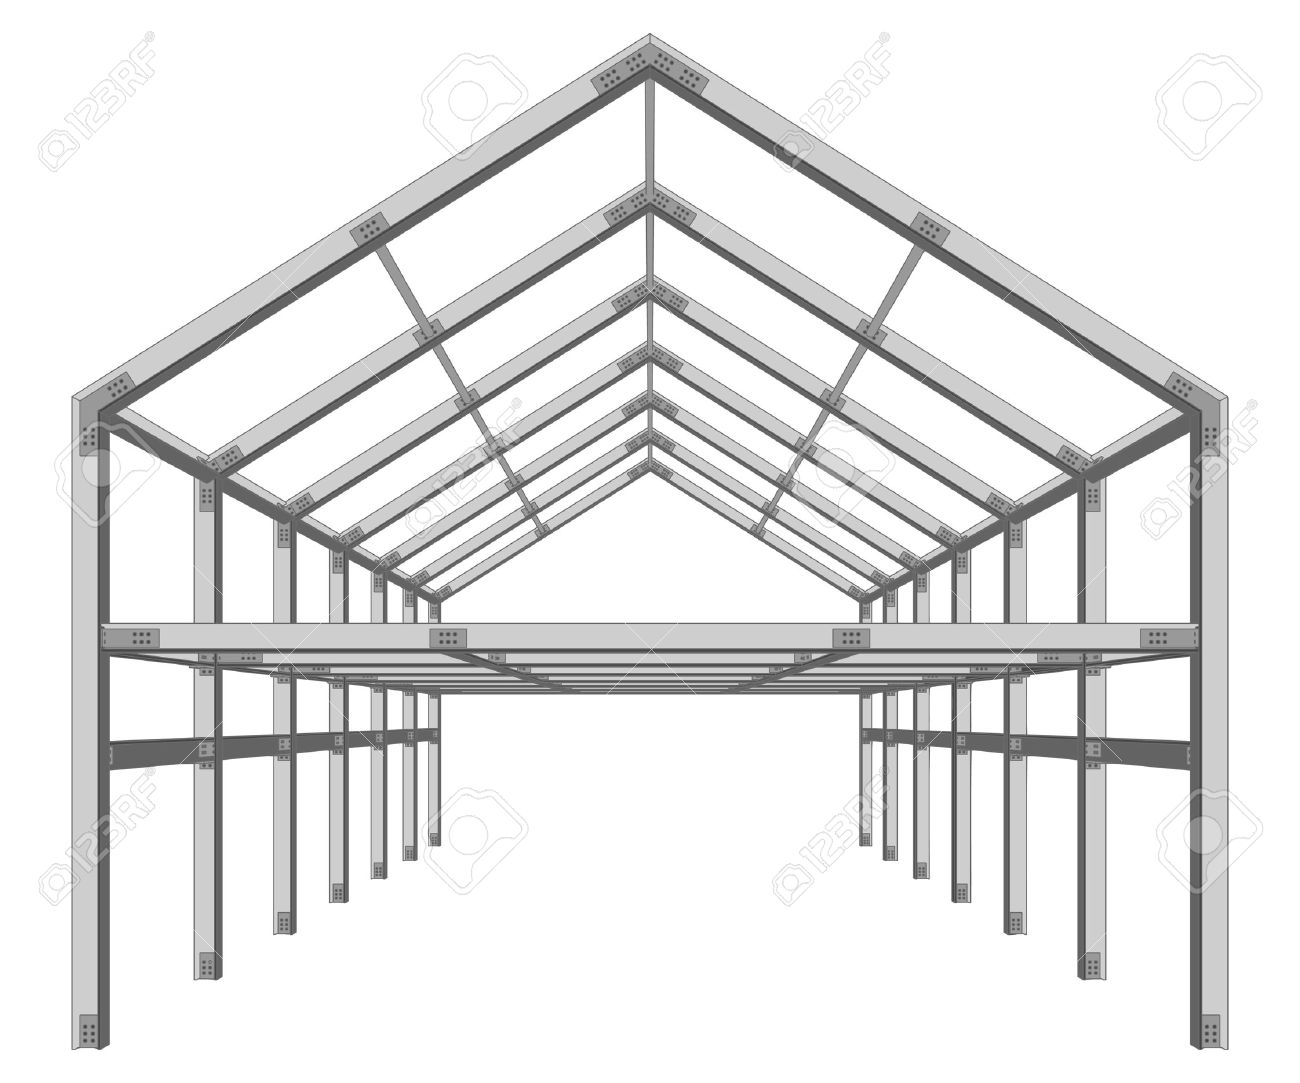 Steel Building Clipart 20 Free Cliparts